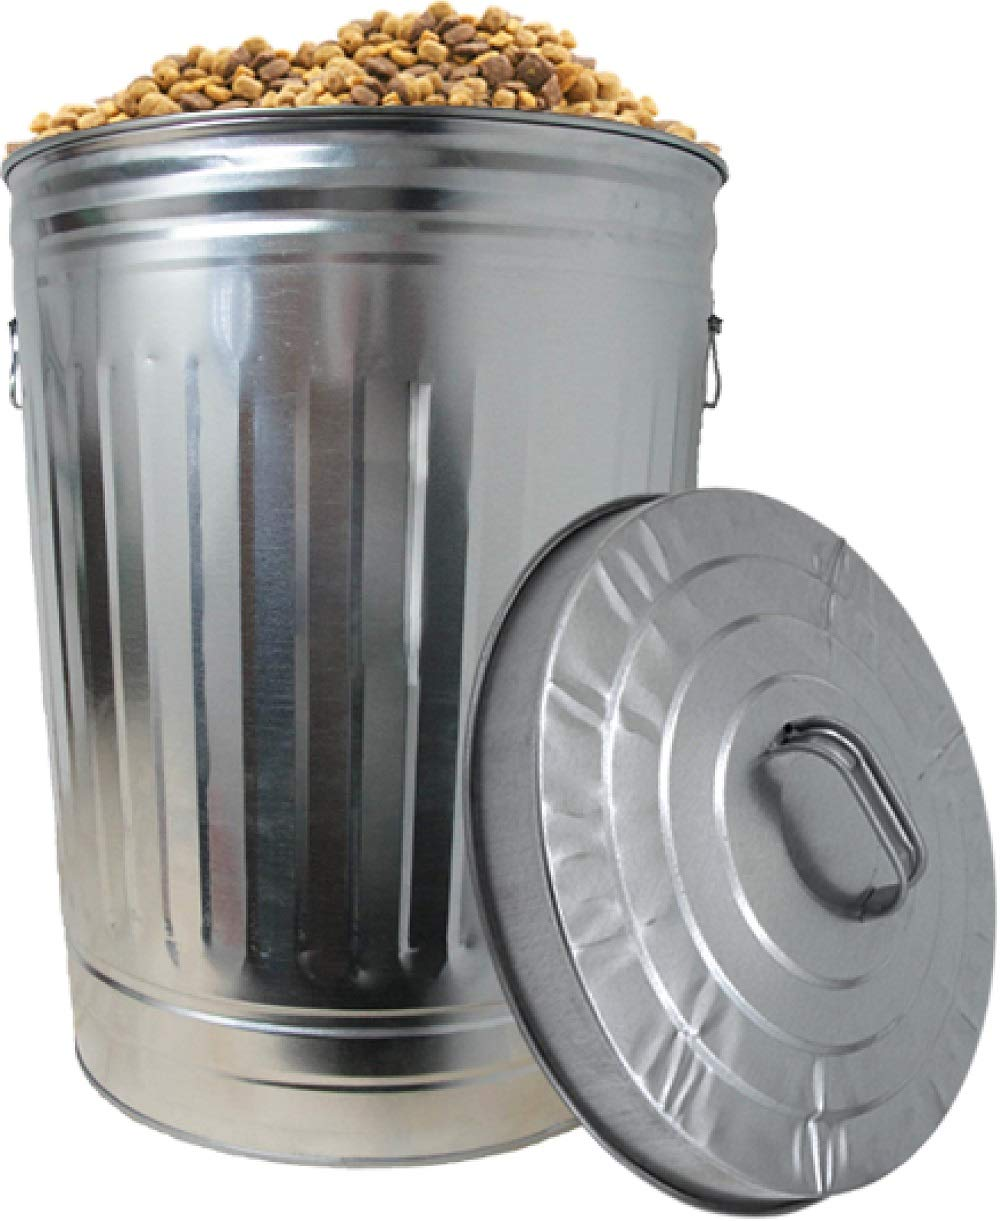 Dover Parkersburg DP1211K Steel Can, 20-Gallon Silver by Dover Parkersburg (Image #4)